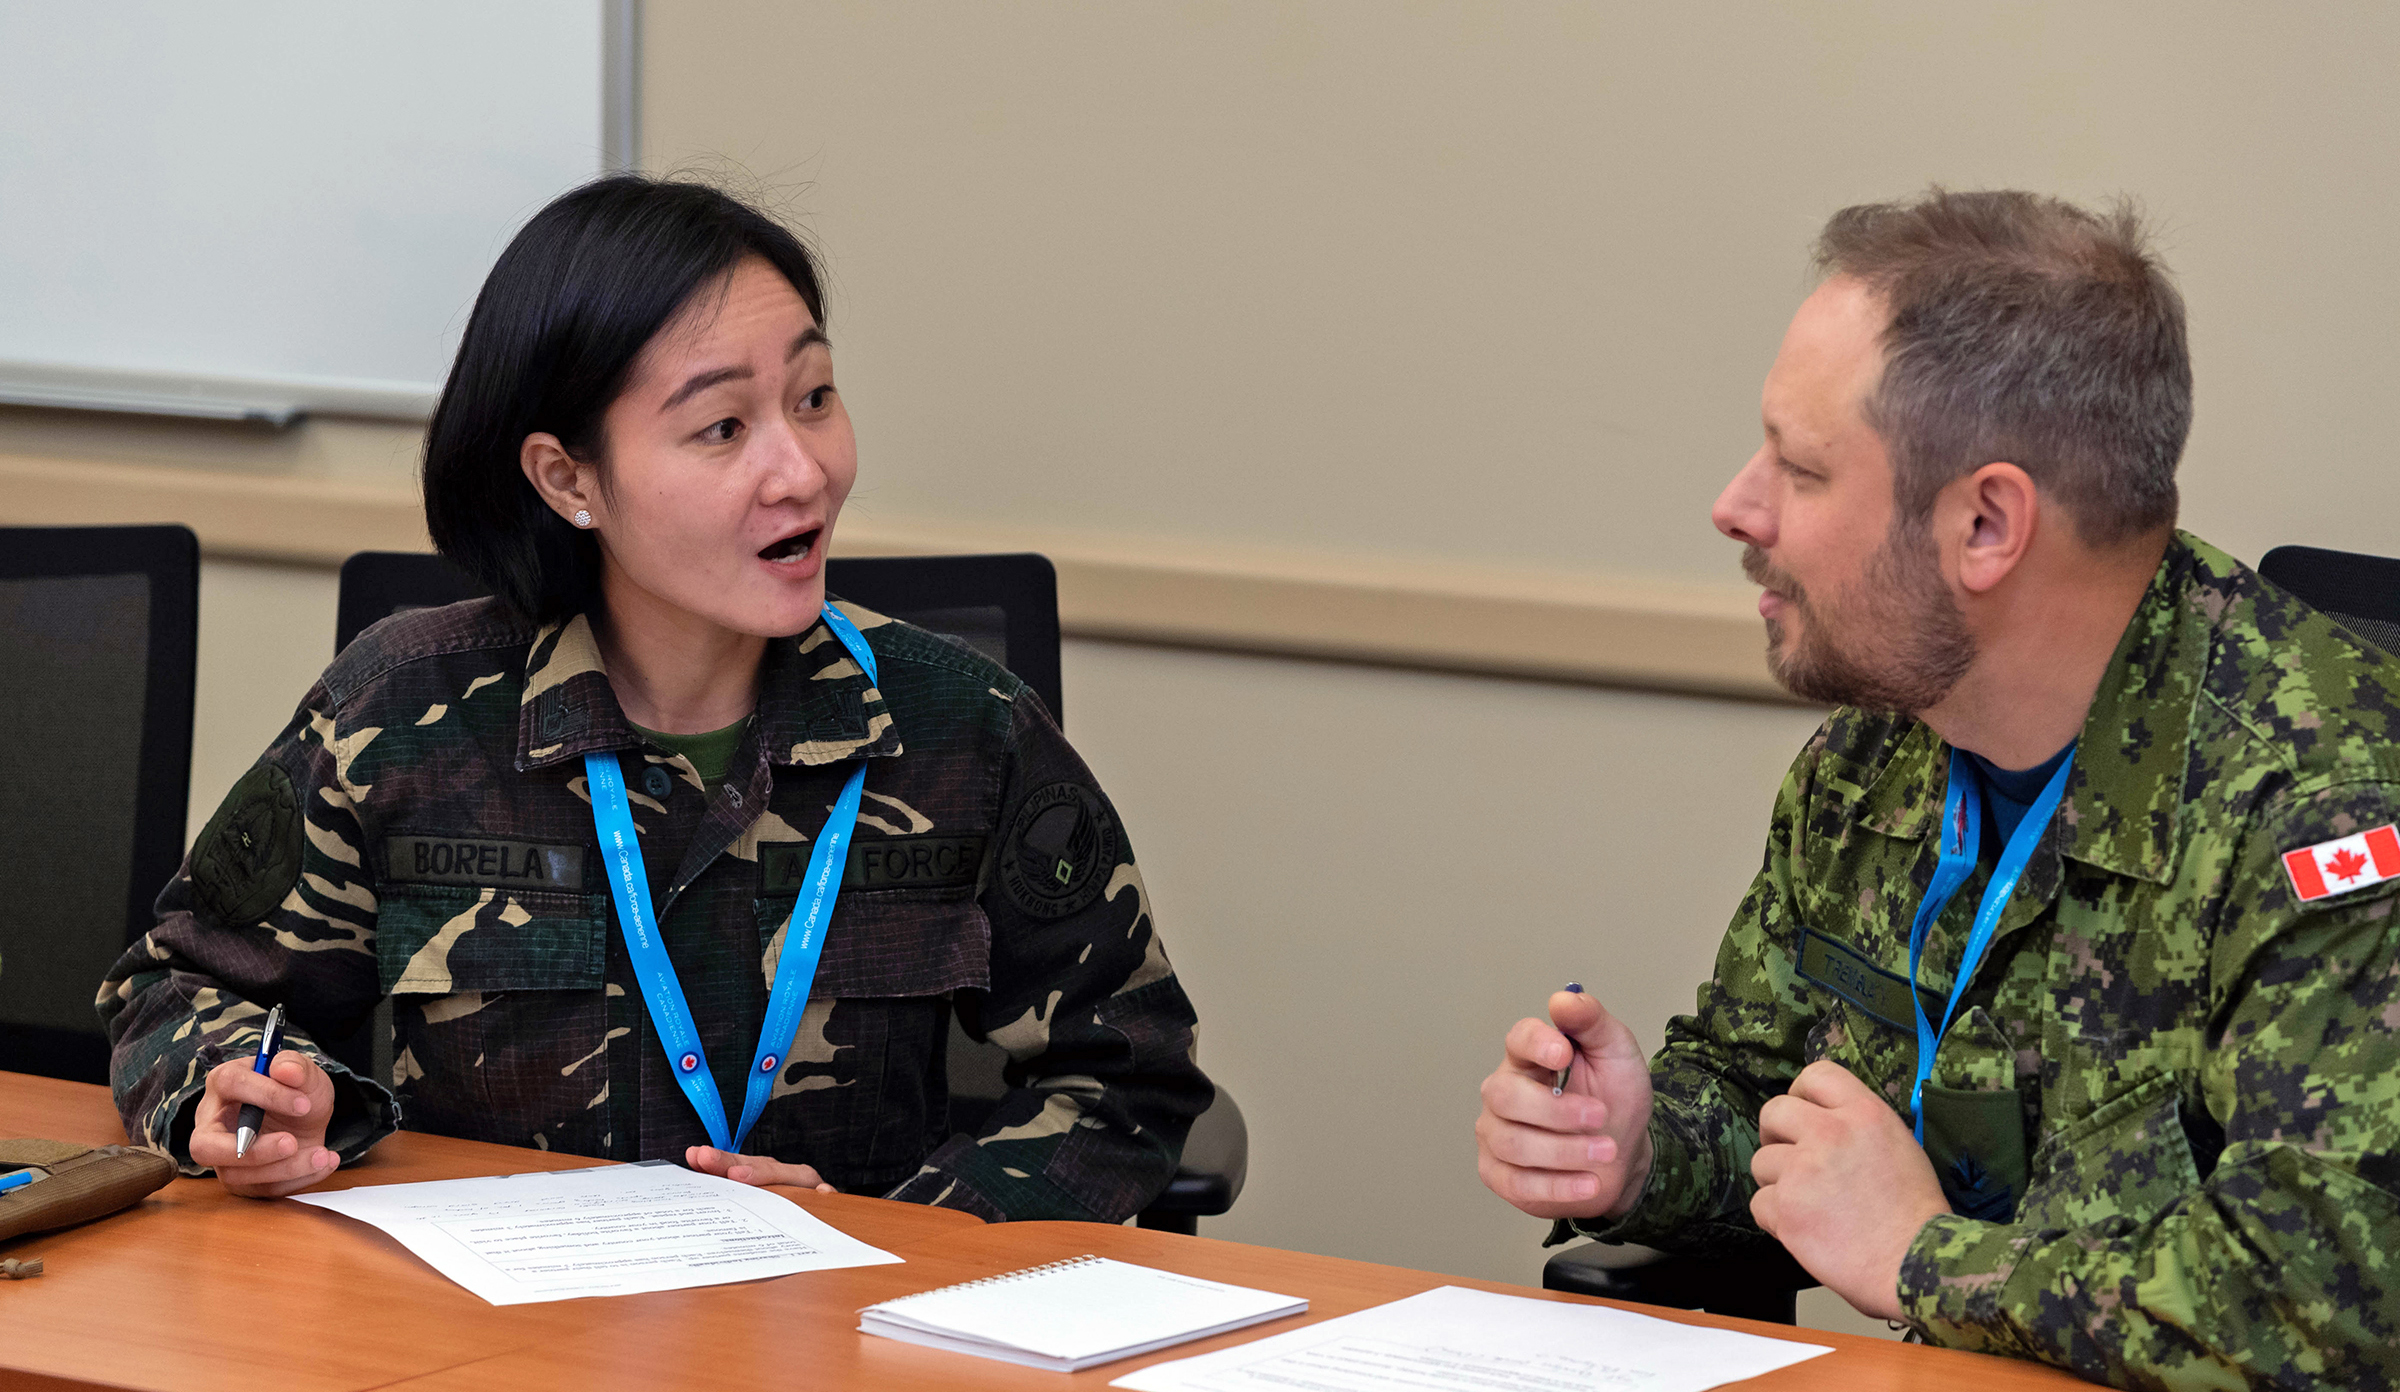 A member of the Philippine Air Force (left) and a member of the Royal Canadian Air Force discuss an issue during the Junior Enlisted Leadership Forum held at 17 Wing Winnipeg, Manitoba, from October 21 to 25, 2019. PHOTO: Corporal Brian Lindgren, WG2019-0525-006